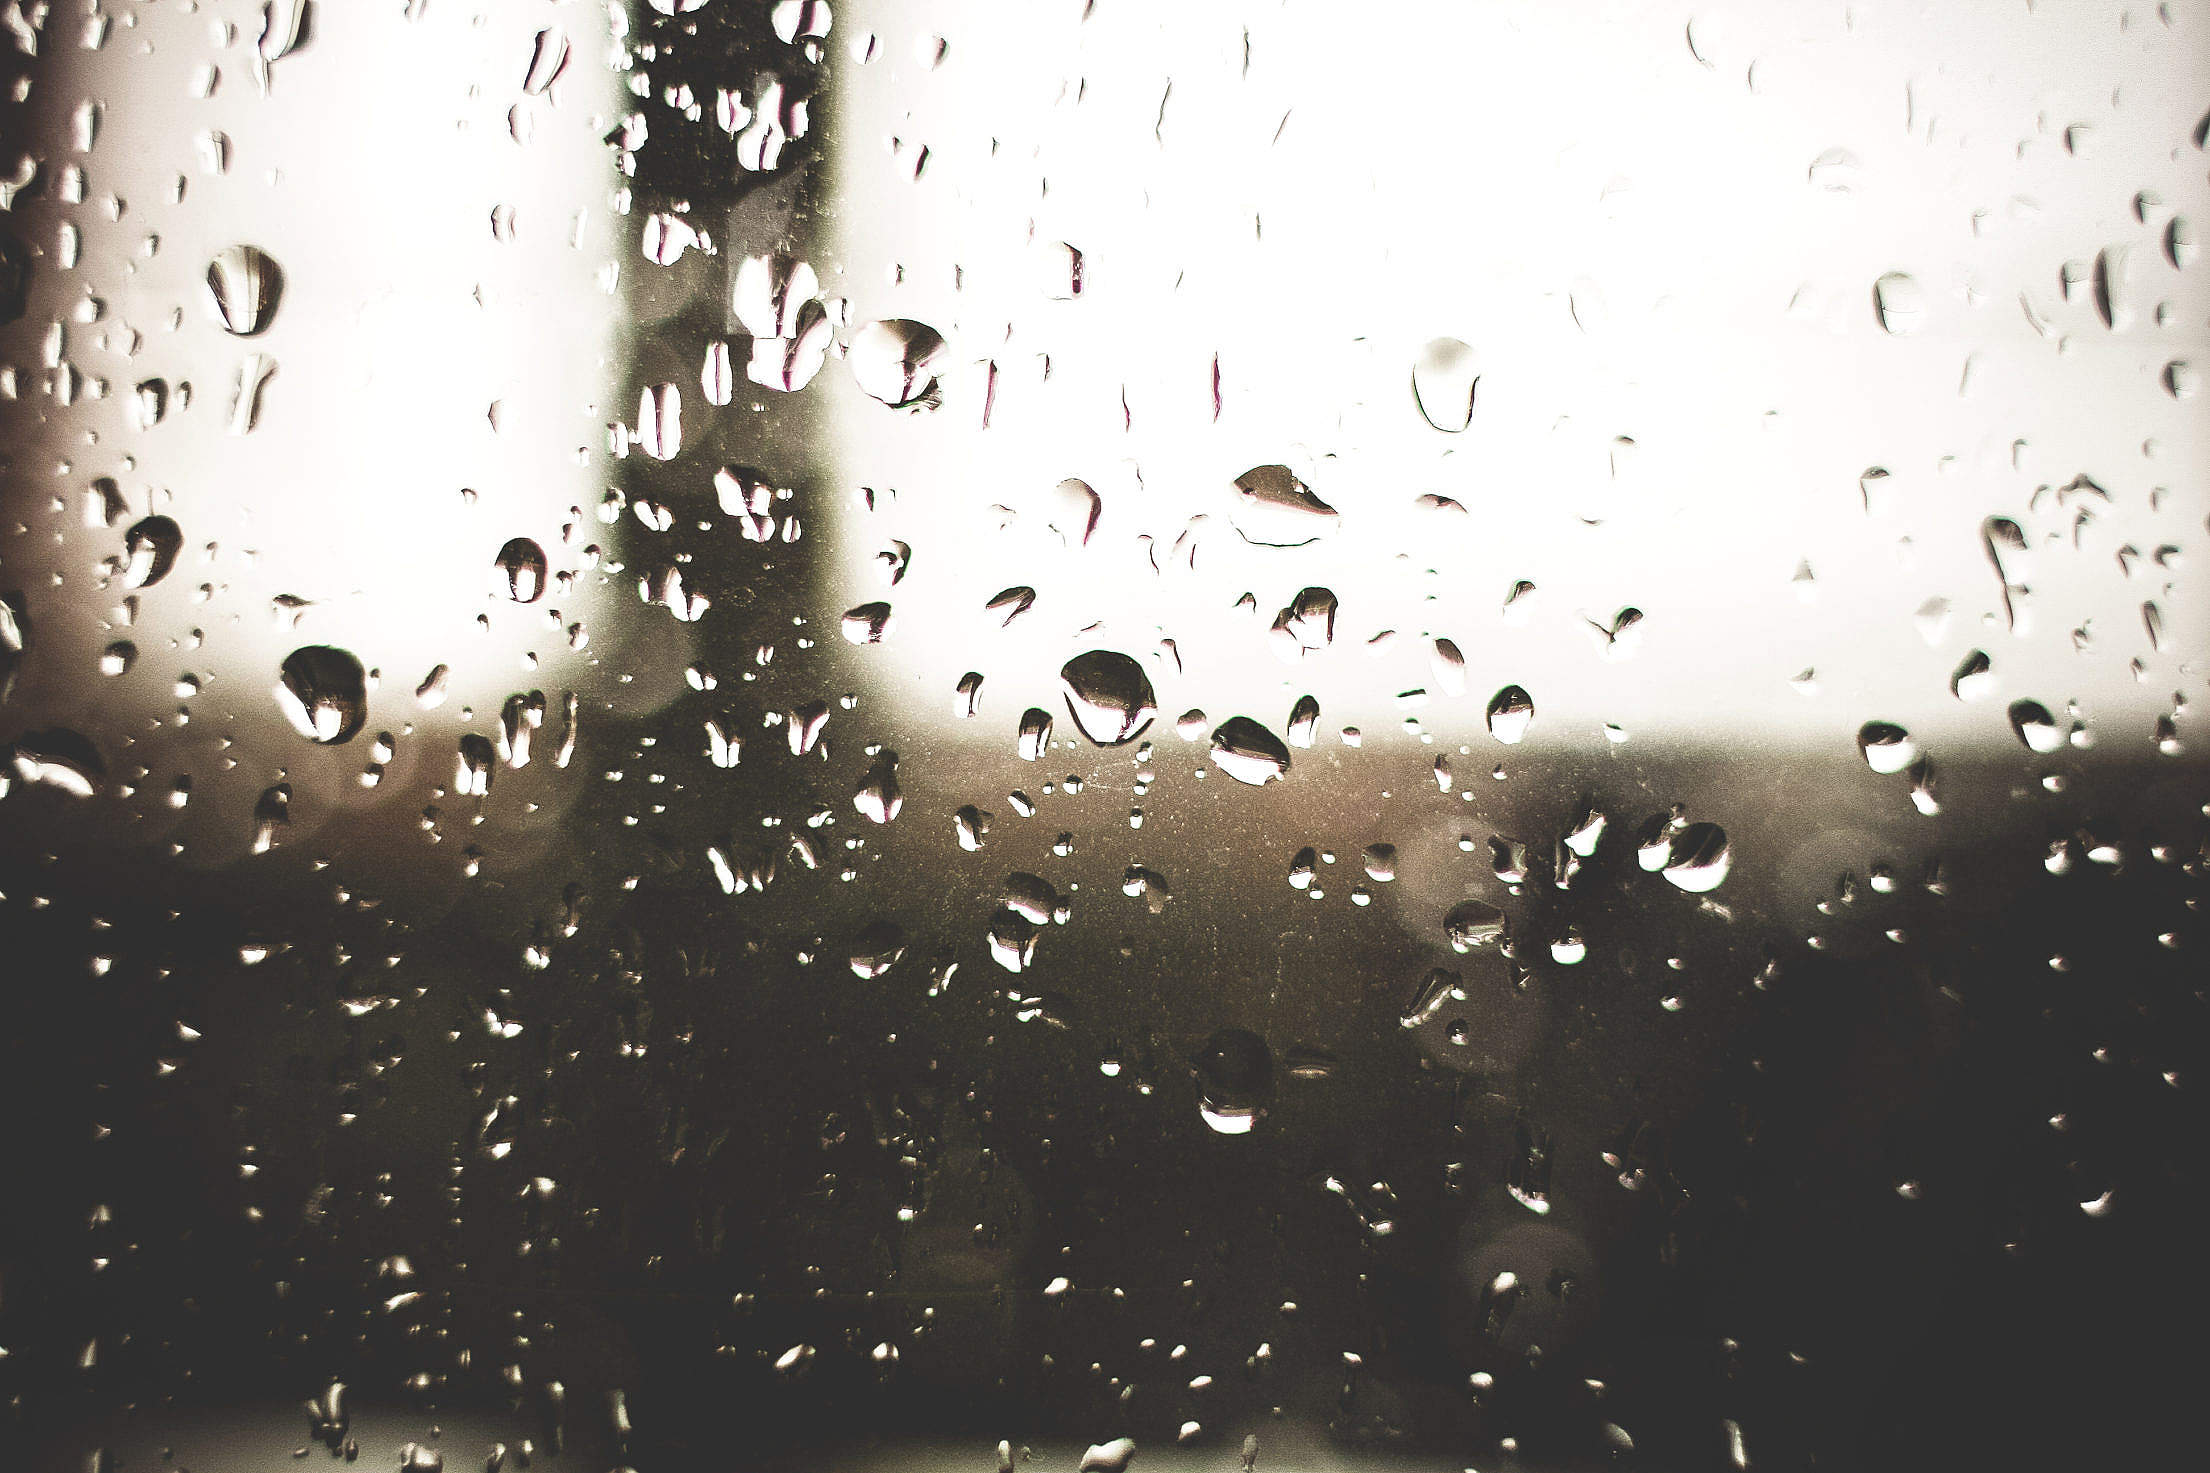 Raindrops on a Window Free Stock Photo